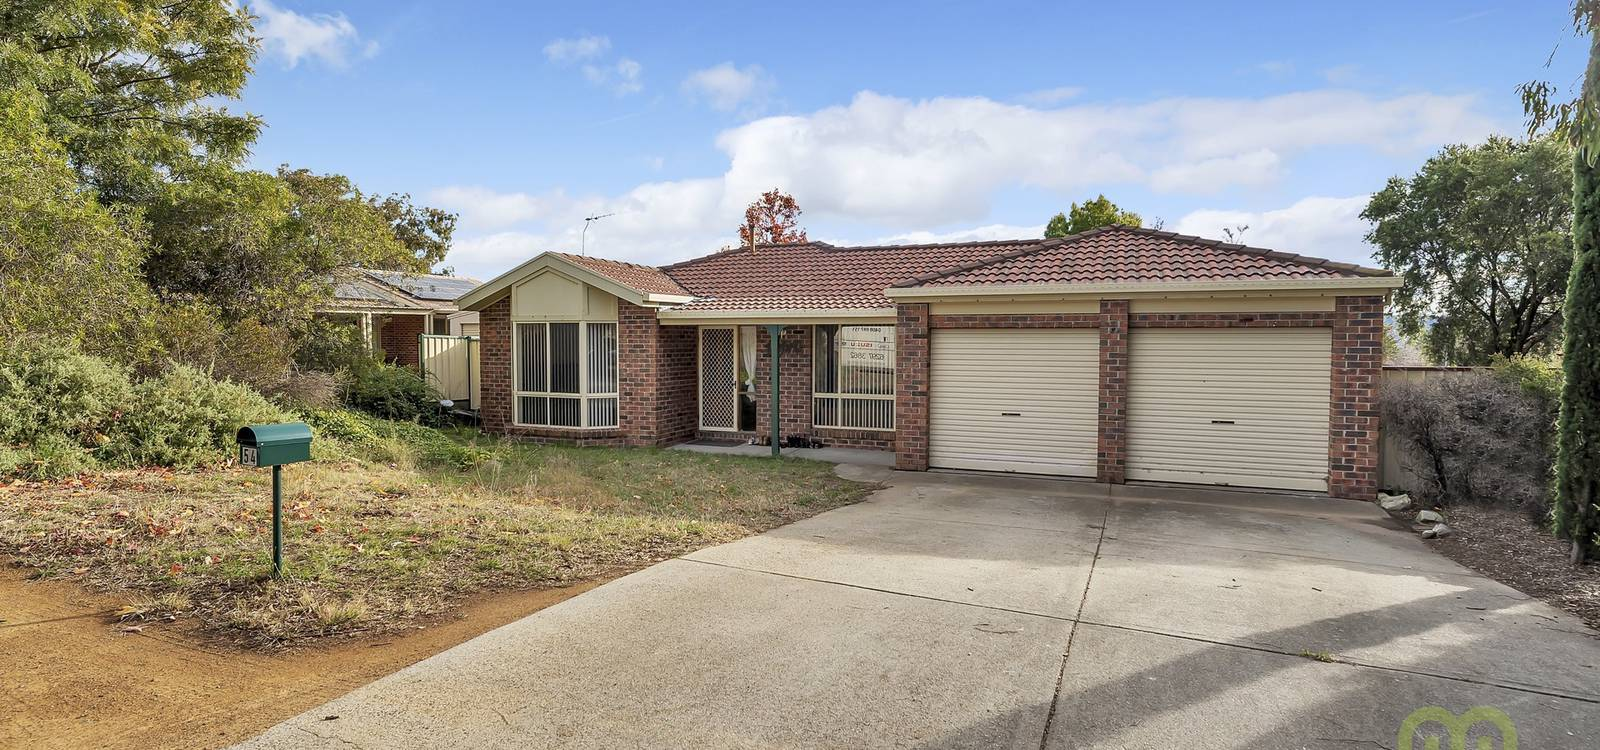 54 Ina Gregory Circuit CONDER, ACT 2906 - photo 1